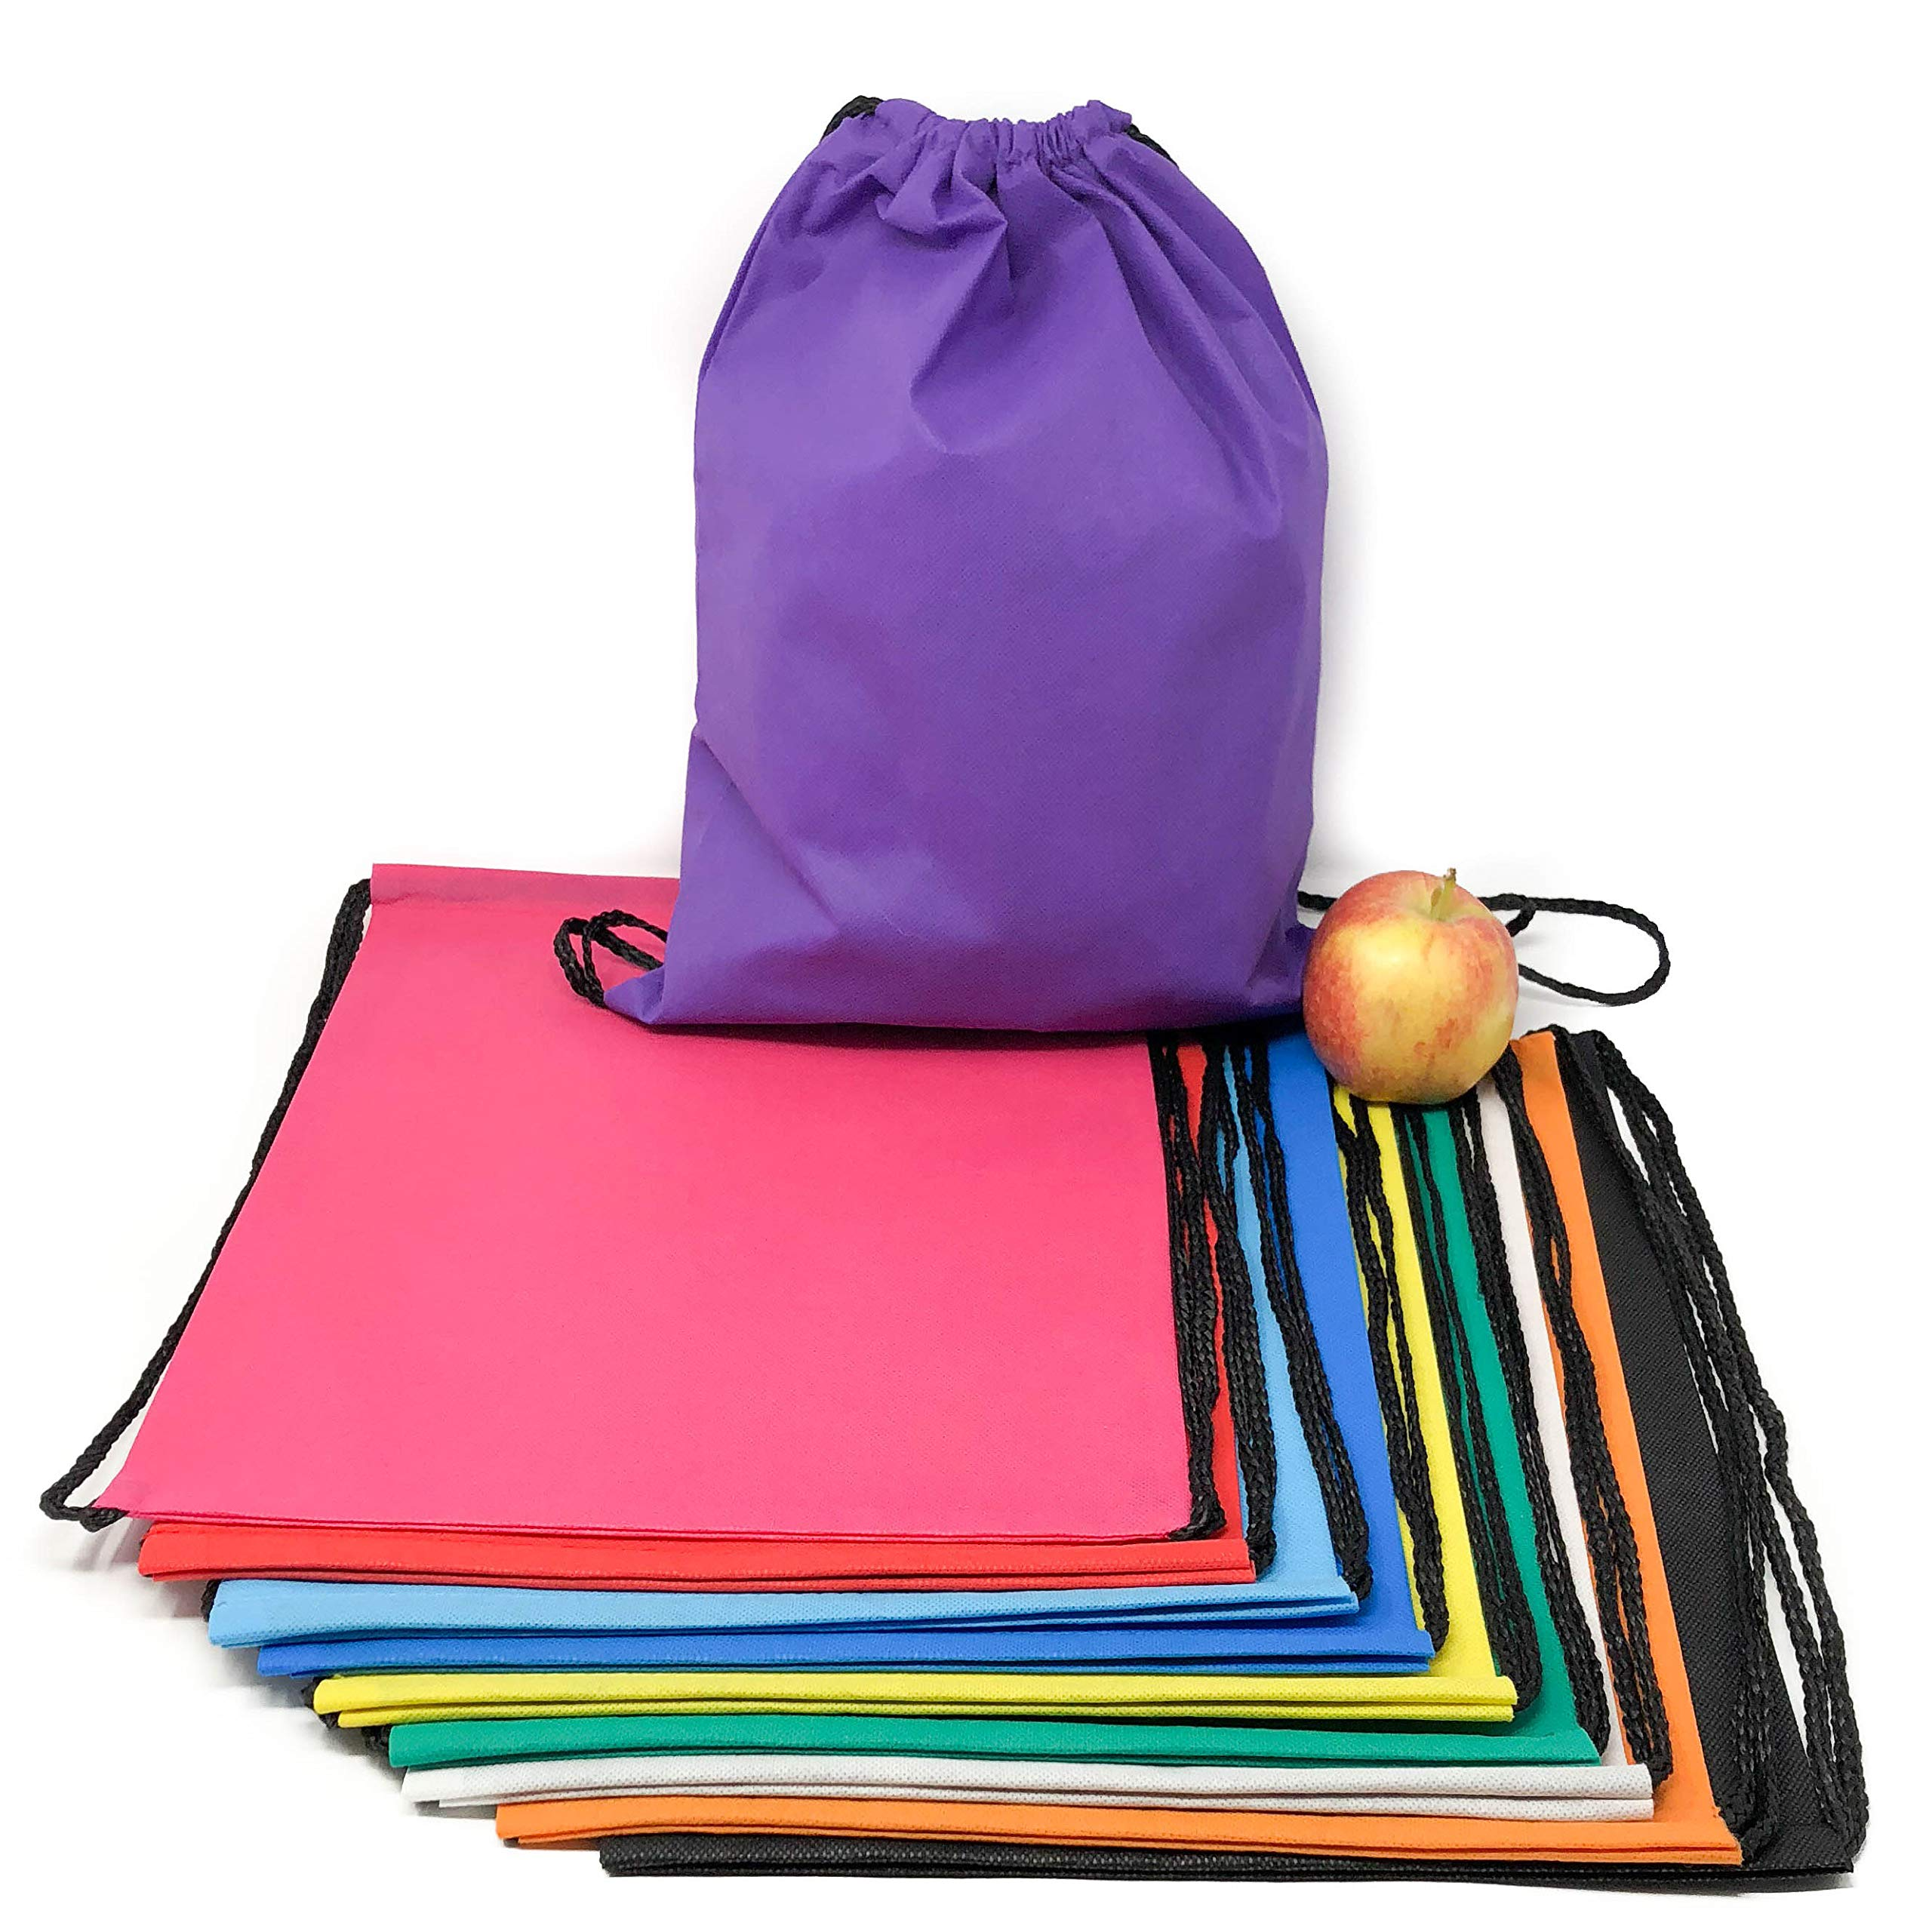 50 Pack Bulk Drawstring Bags - Polyester Backpacks